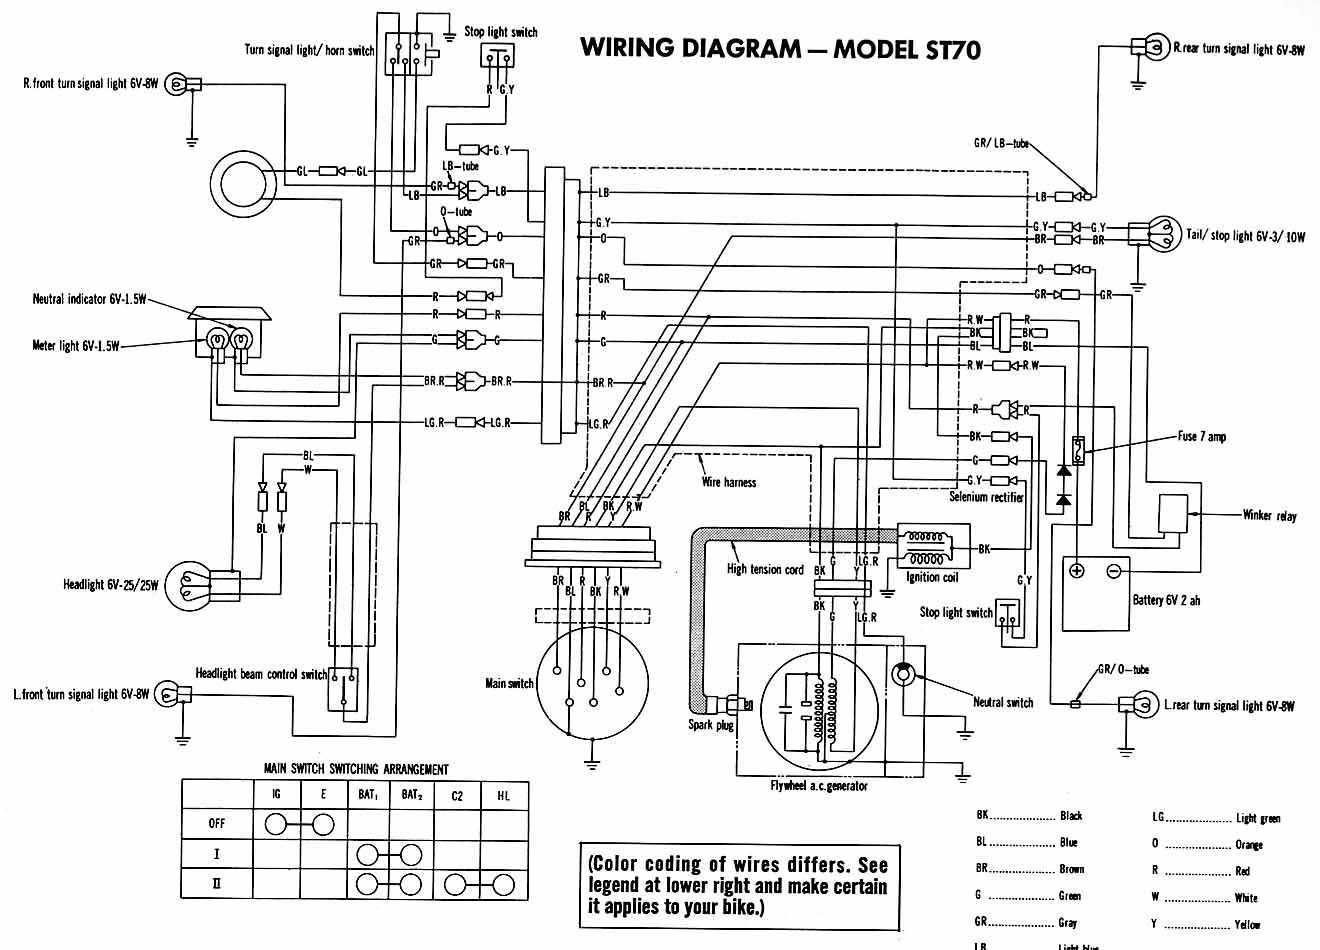 1977 honda ct70 wiring diagram rf tx and rx circuit 1978 ct90 best library trusted u2022 125cc electrical 1972